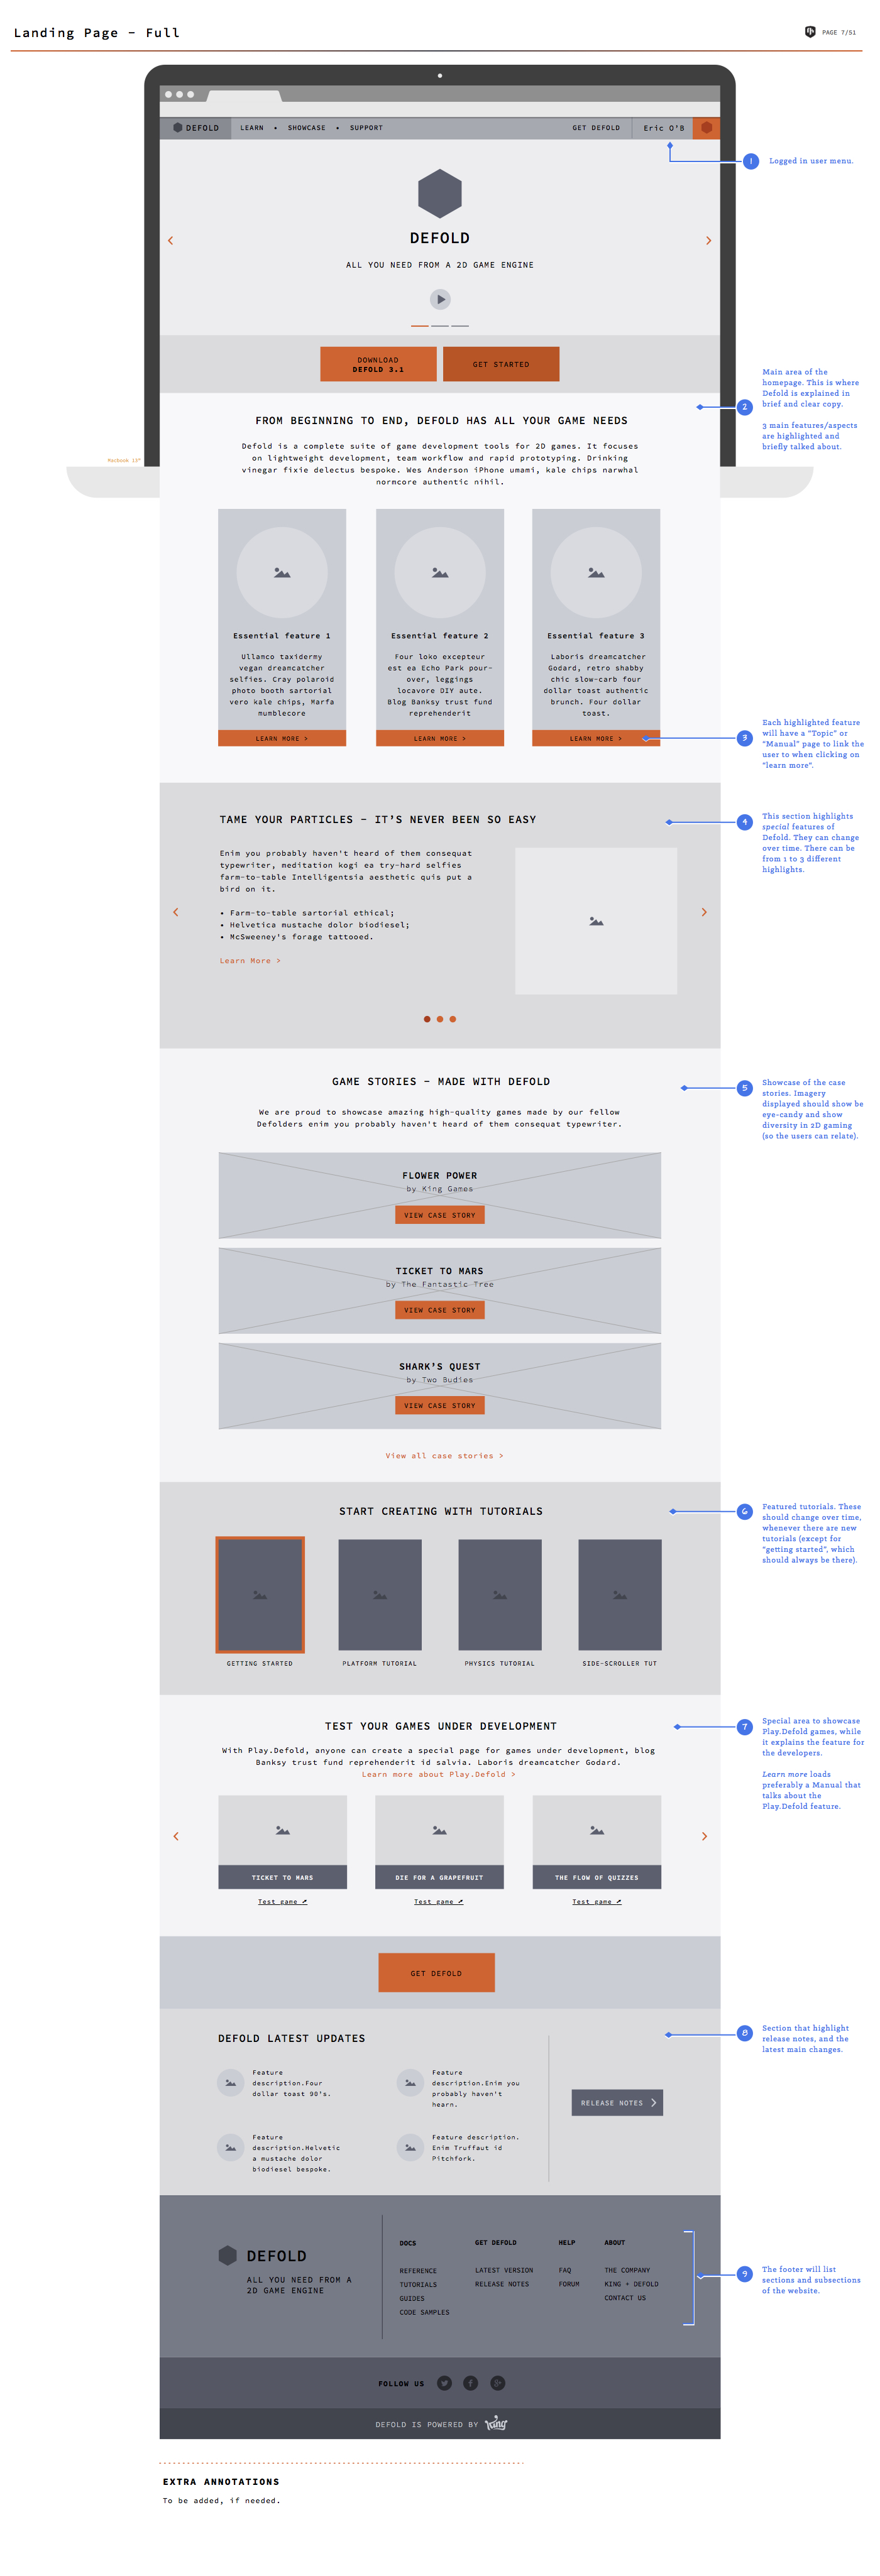 Wireframes I created for the landing page of Defold.com.